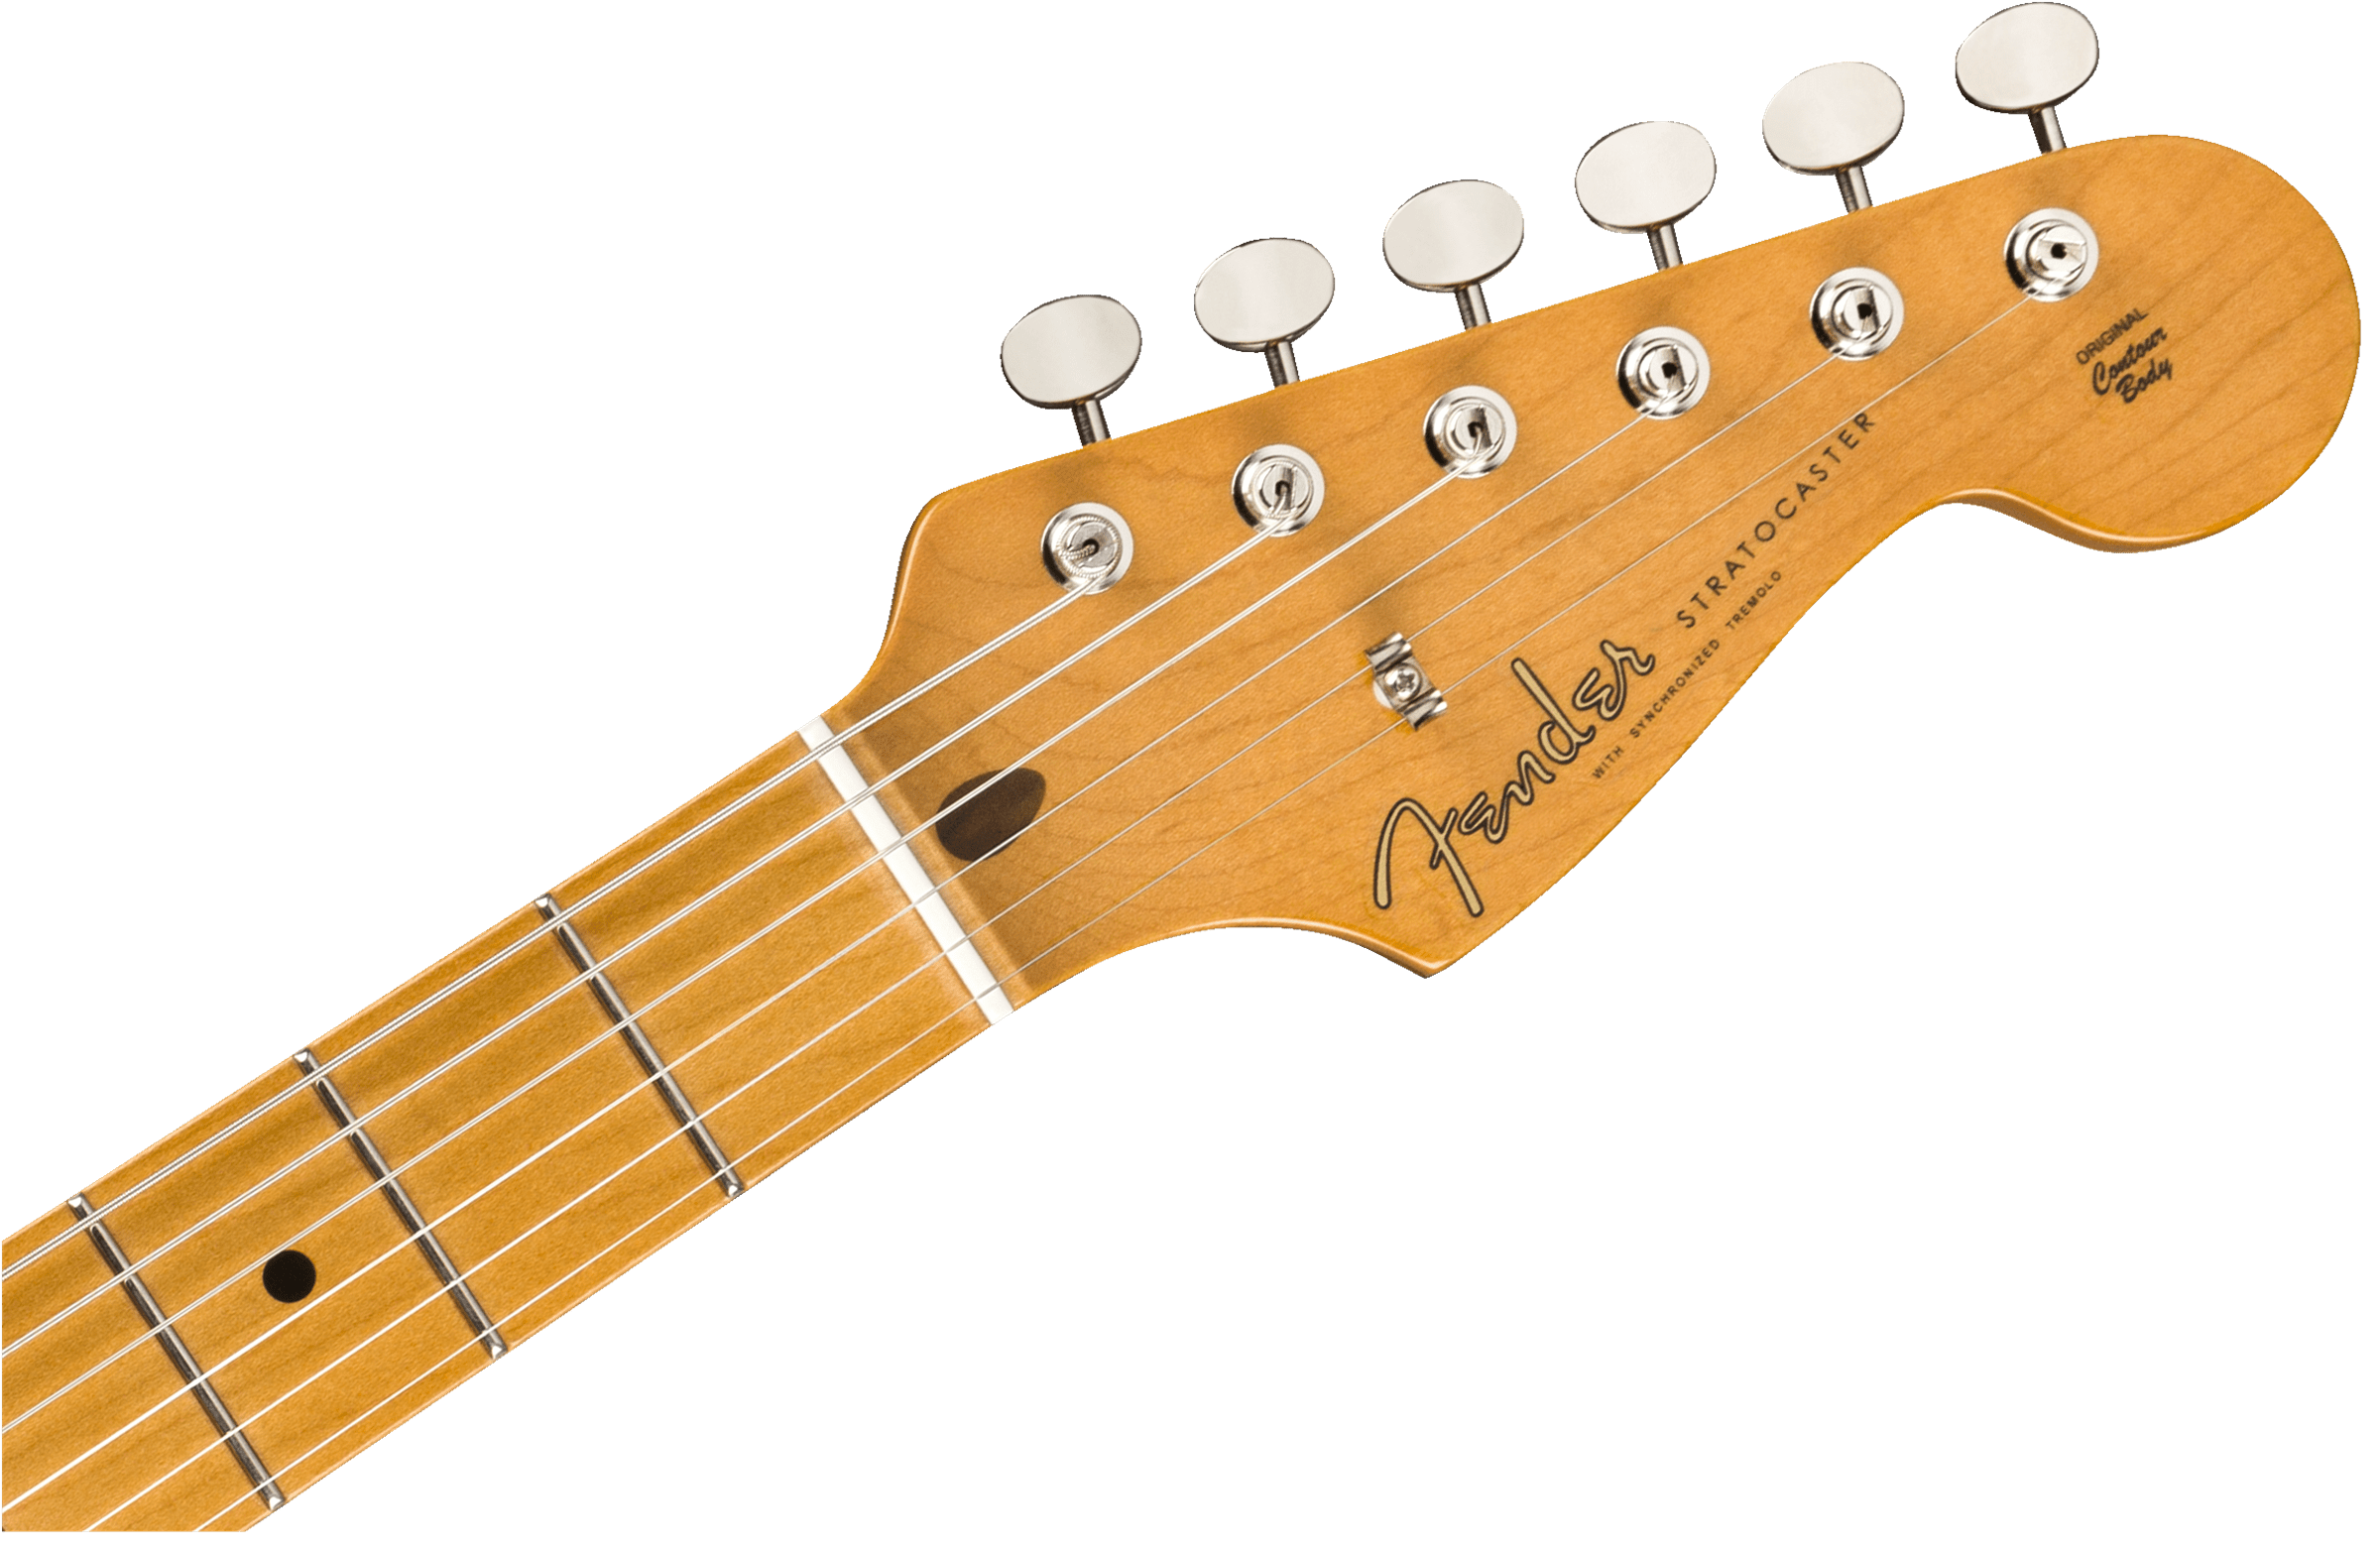 Gilmour Stratocaster Wiring Diagram Auto Electrical Factory Hss Guitar David Fender Strat Diagrams